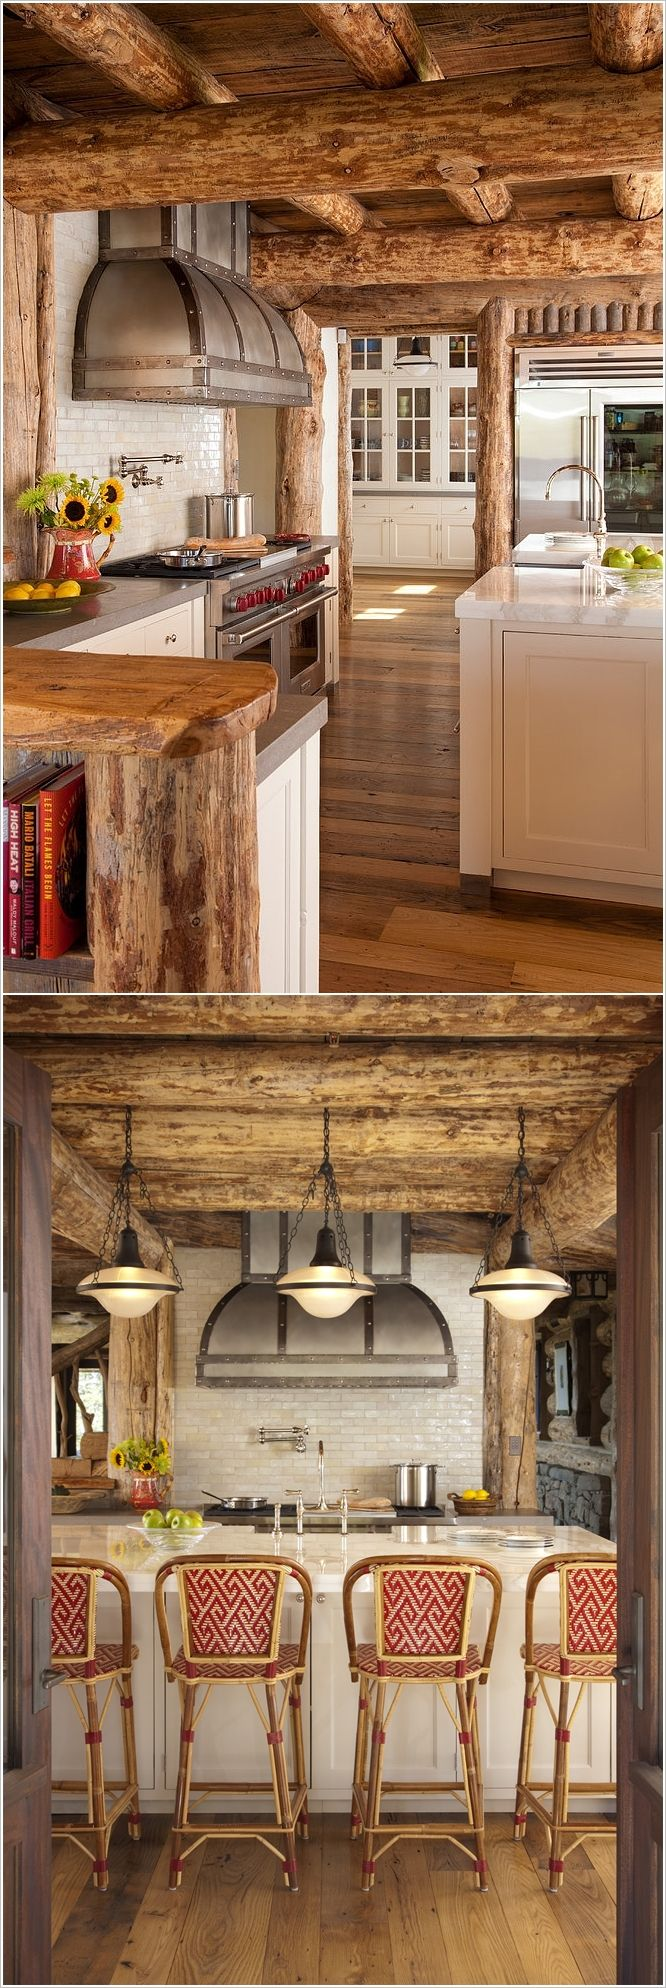 inside pictures of log cabins log cabin interior kitchen 8 amazing log cabin interiors that will make you awestruck